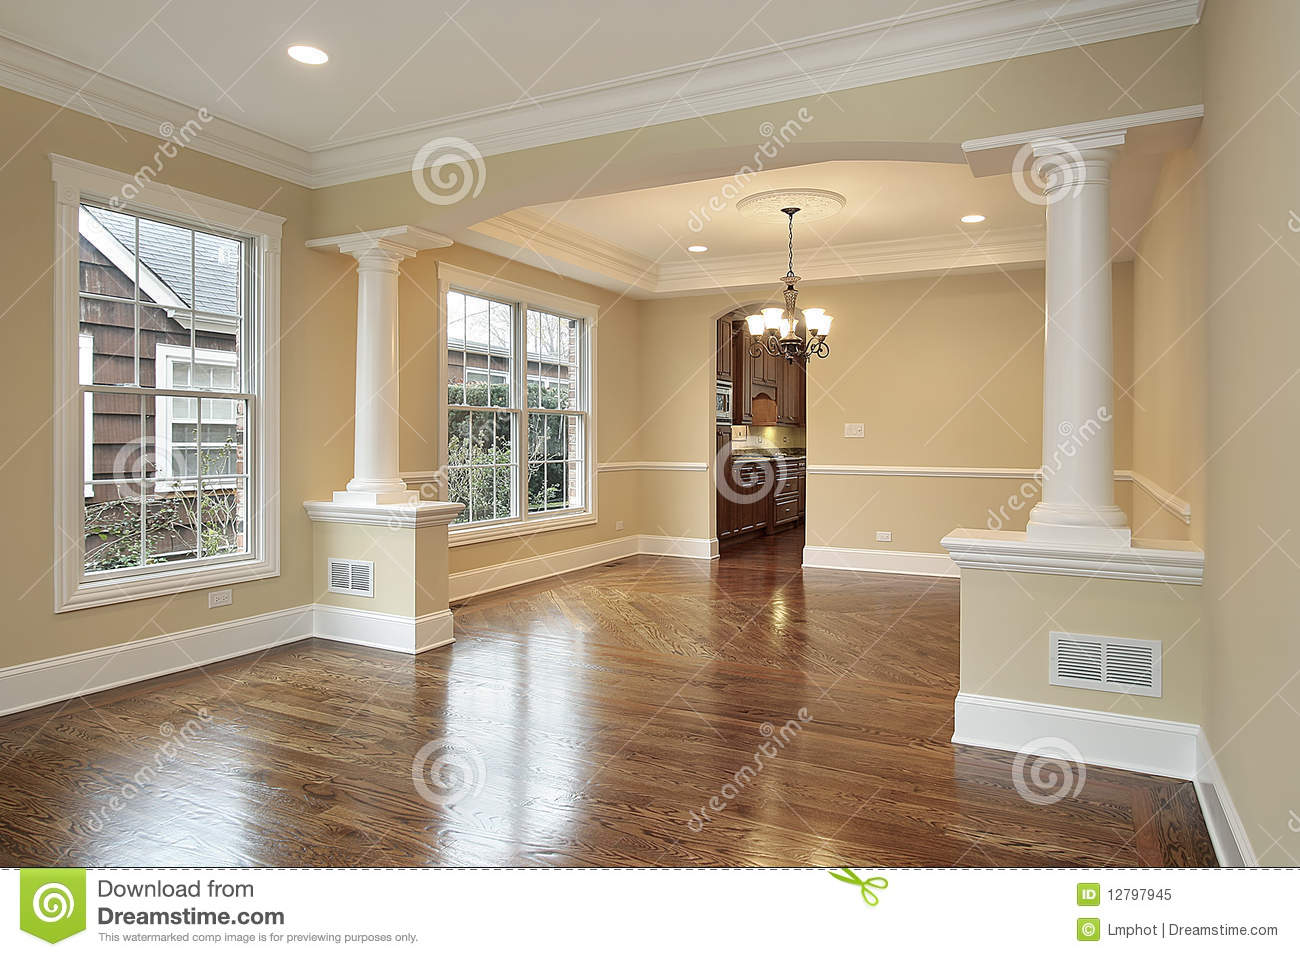 Living And Dining Room With White Pillars Stock Image